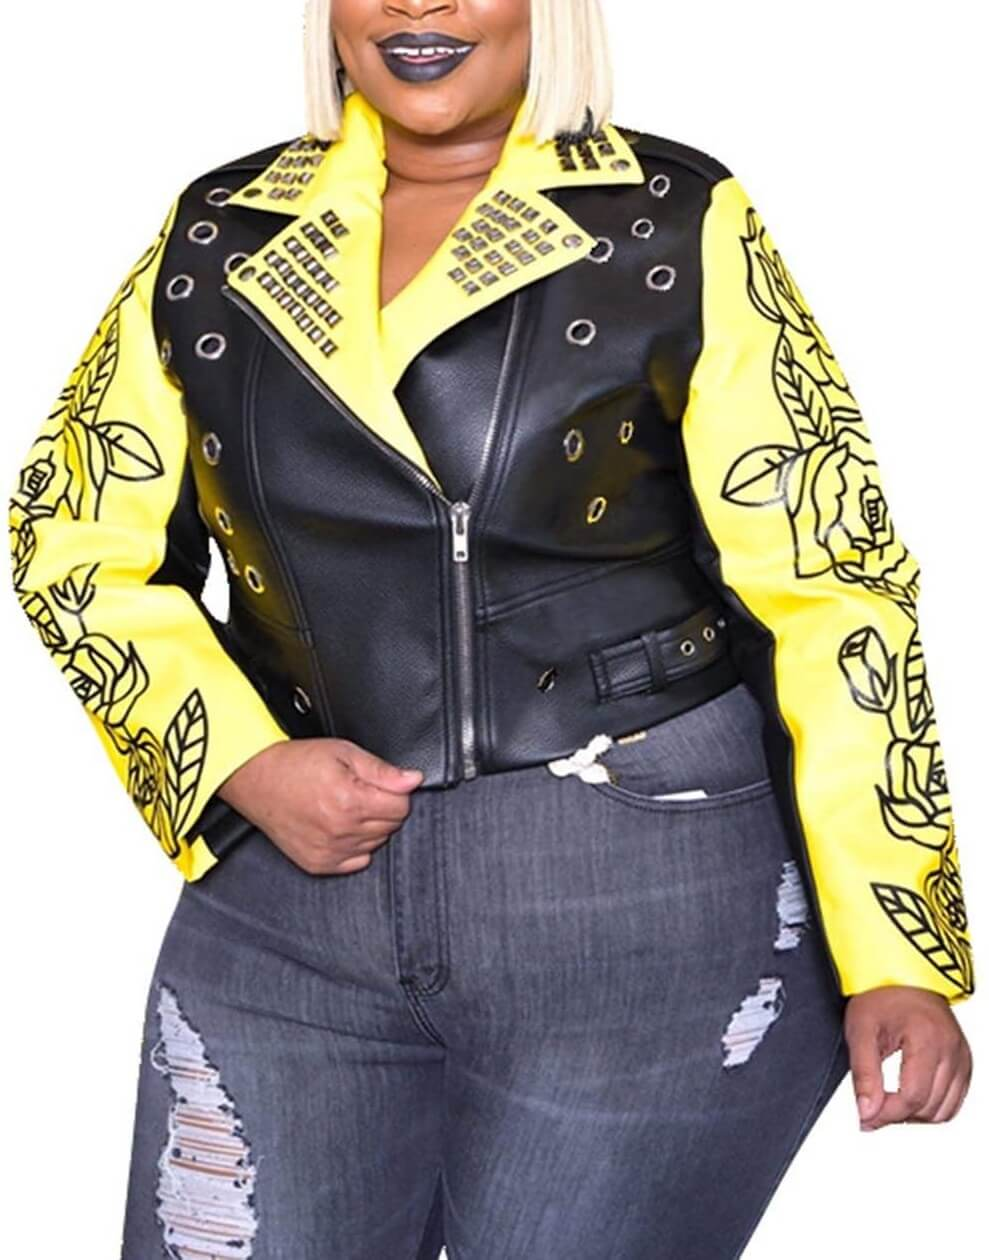 Back and Yellow Flowers and Letters Printing Leather Jacket